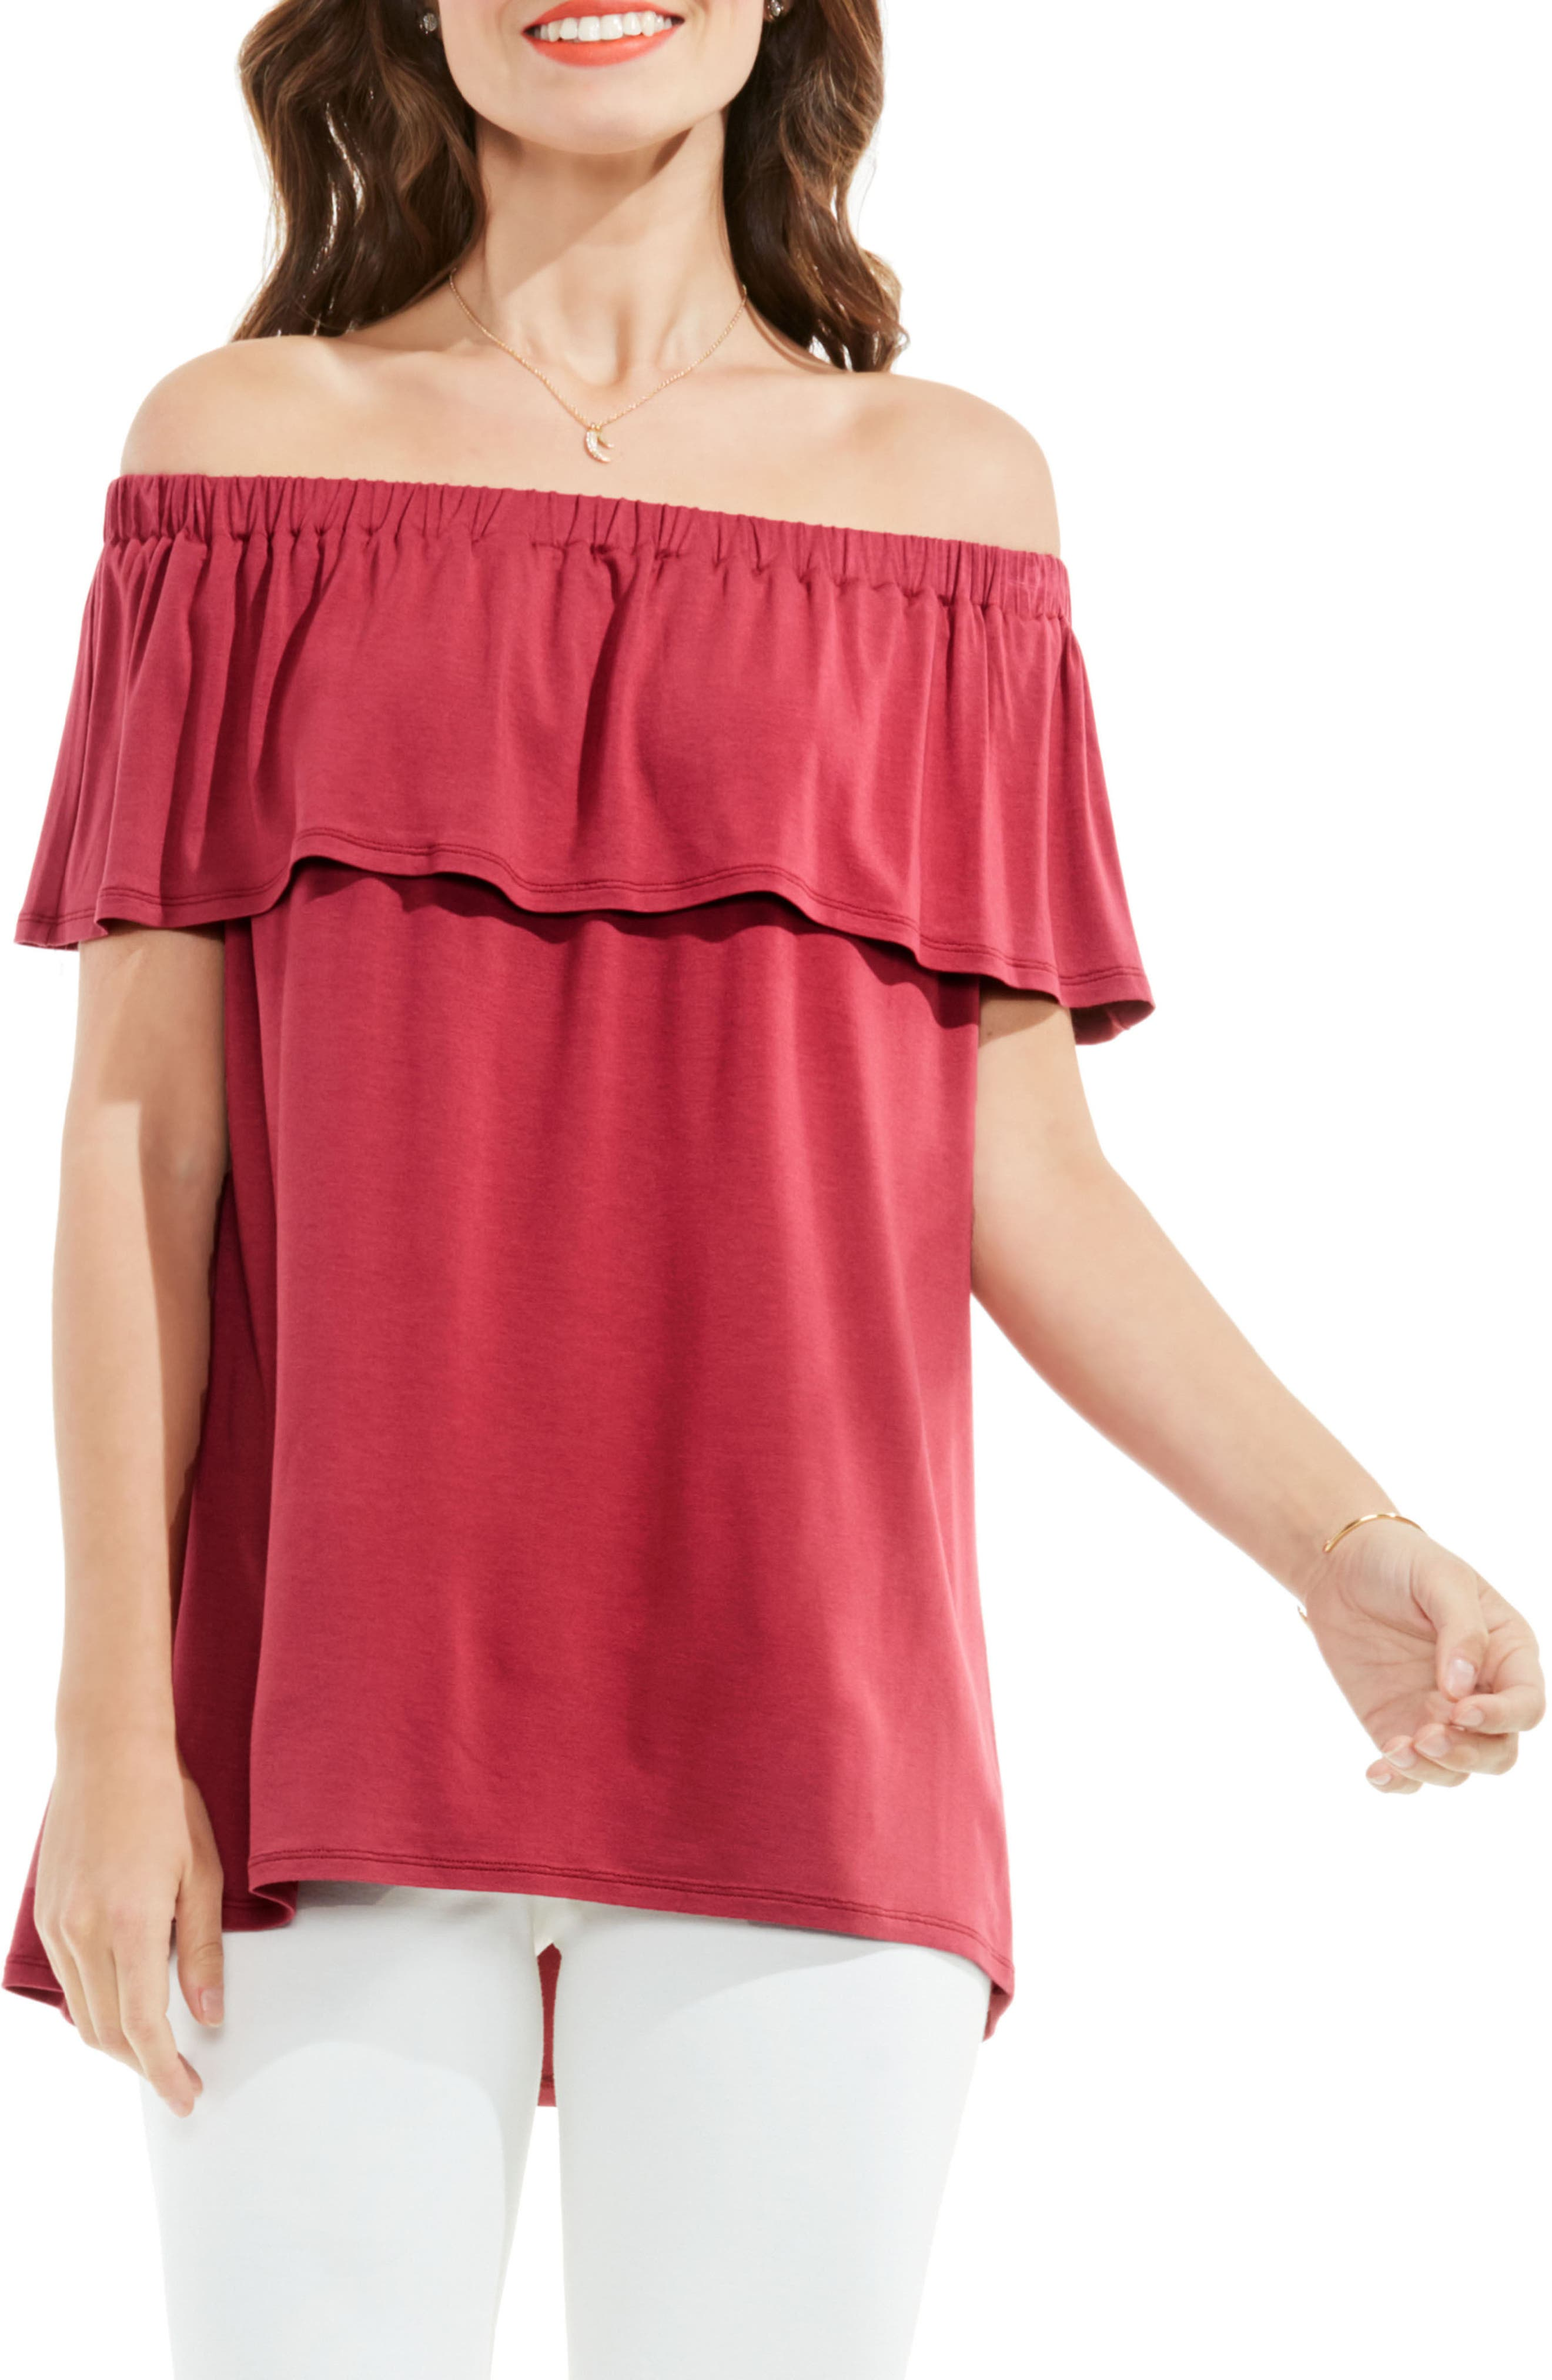 Vince Camuto Ruffle Off the Shoulder Top